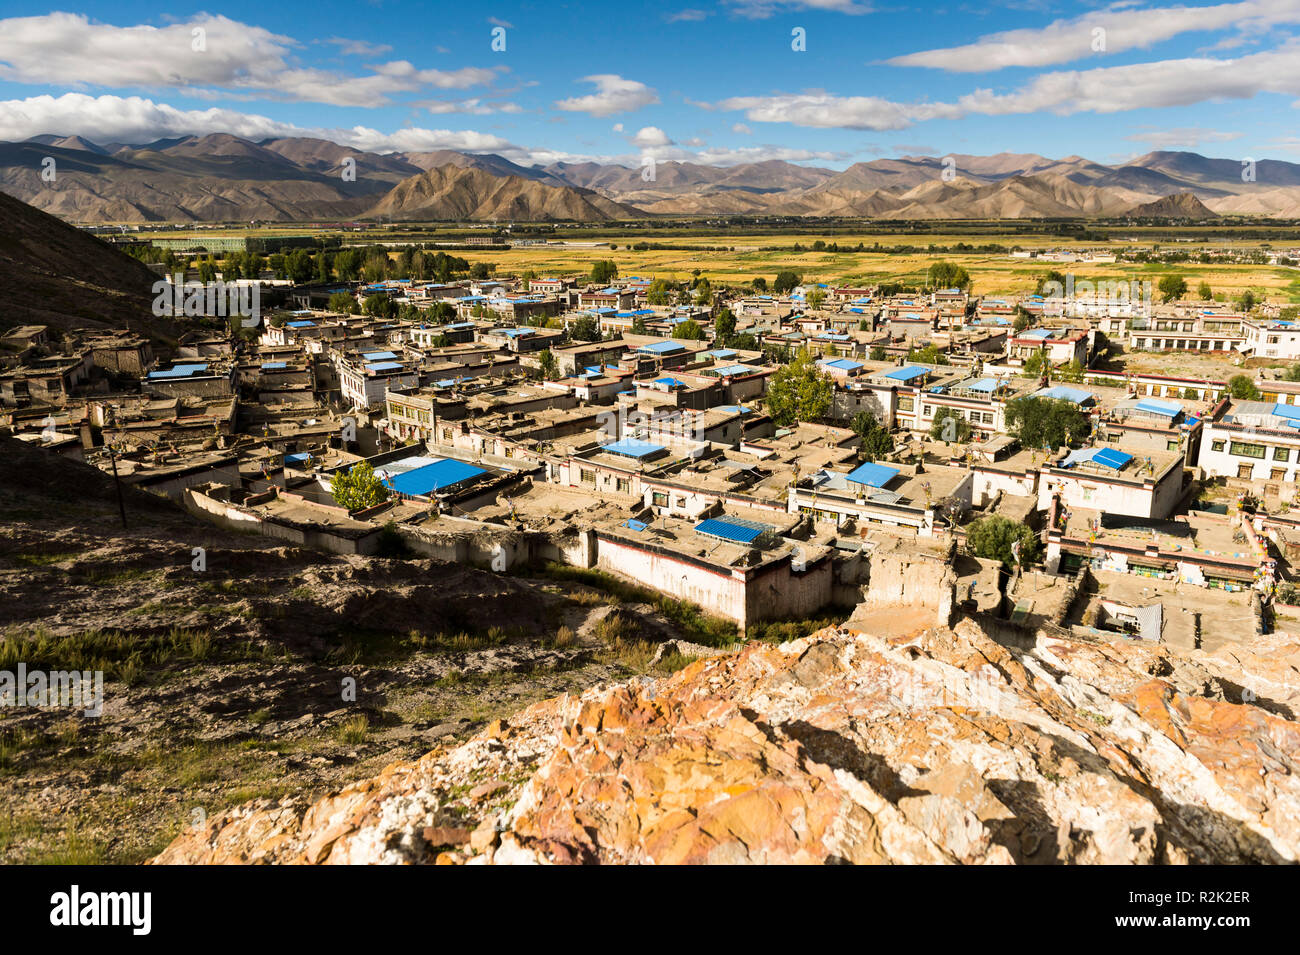 the old town of Gyantse - Stock Image